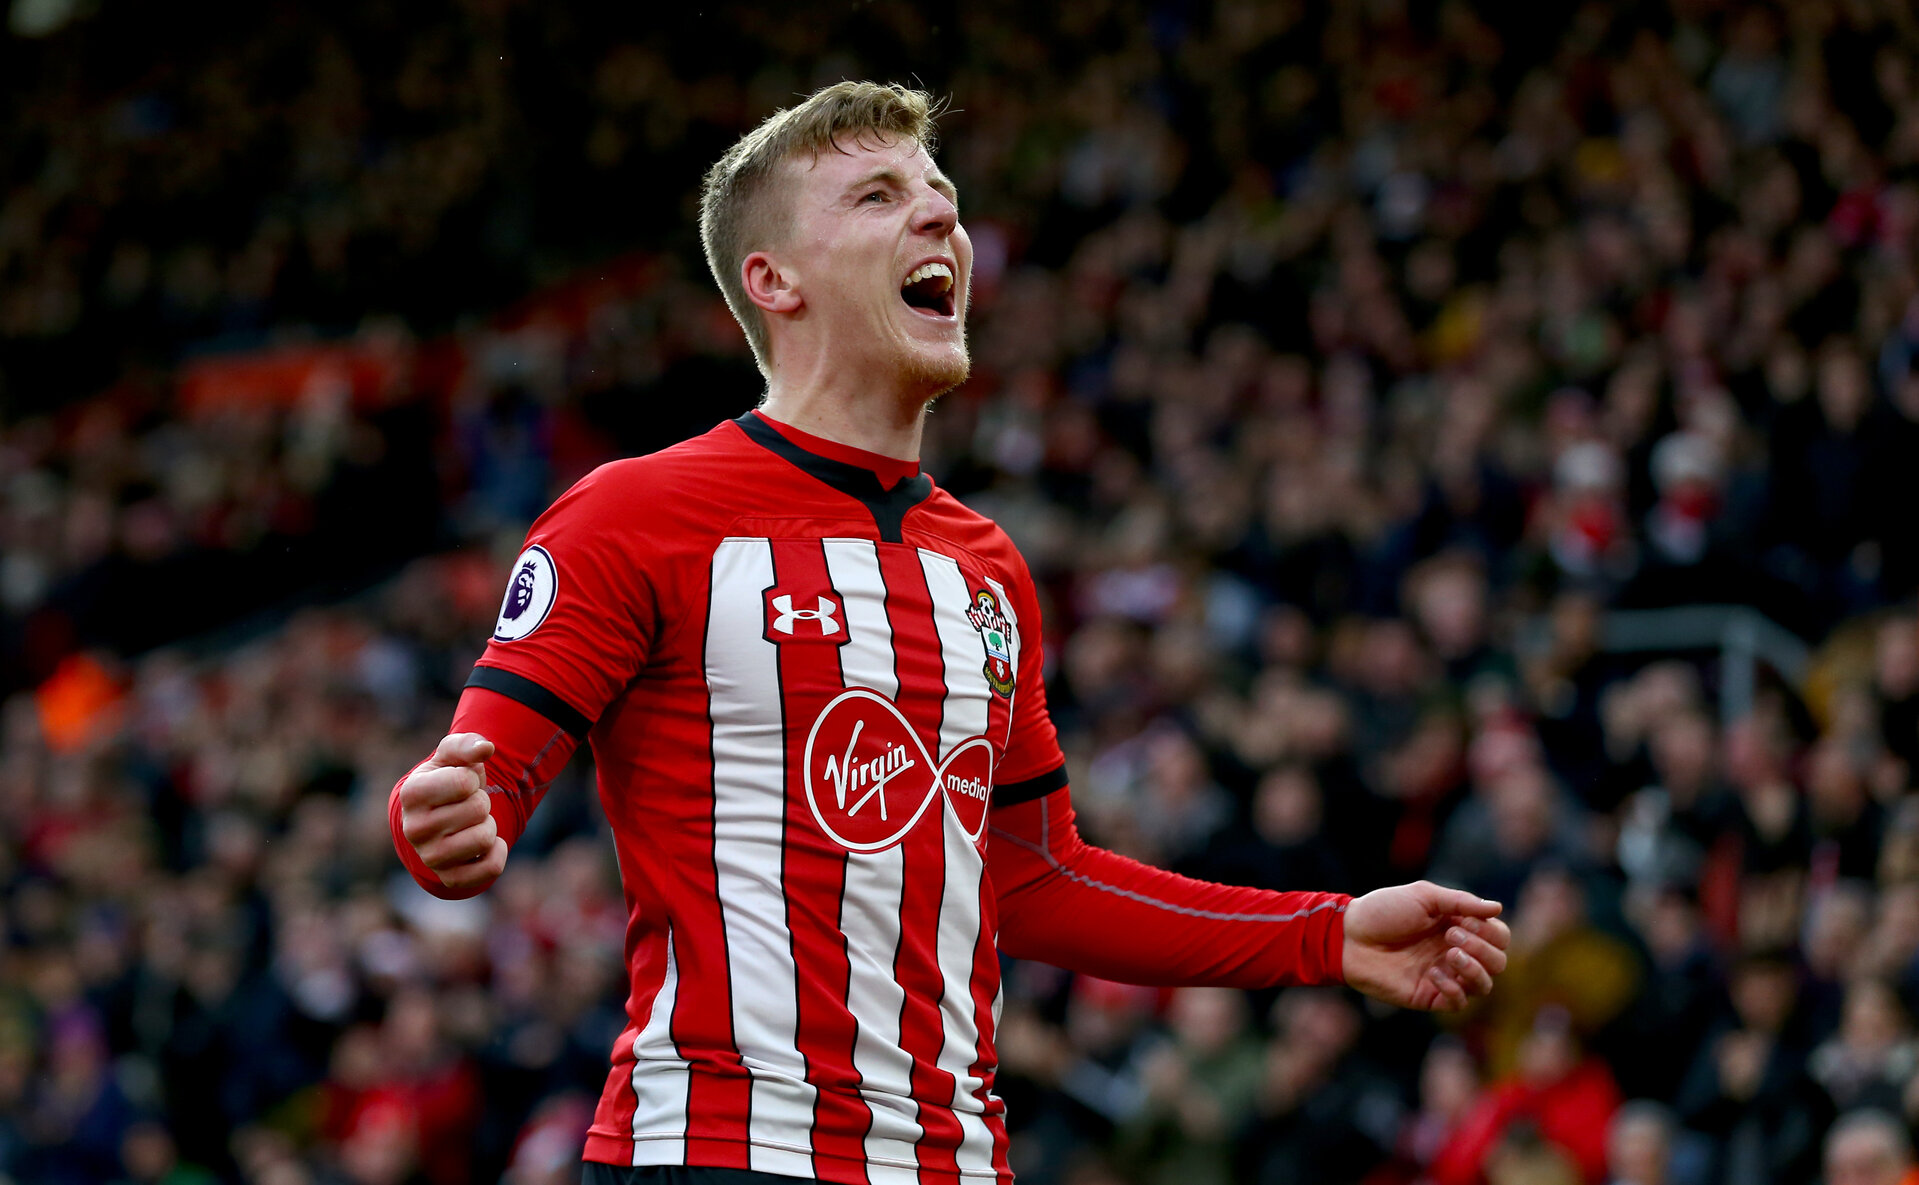 SOUTHAMPTON, ENGLAND - DECEMBER 16: Matt Targett of Southampton during the Premier League match between Southampton FC and Arsenal FC at St Mary's Stadium on December 15, 2018 in Southampton, United Kingdom. (Photo by Matt Watson/Southampton FC via Getty Images)